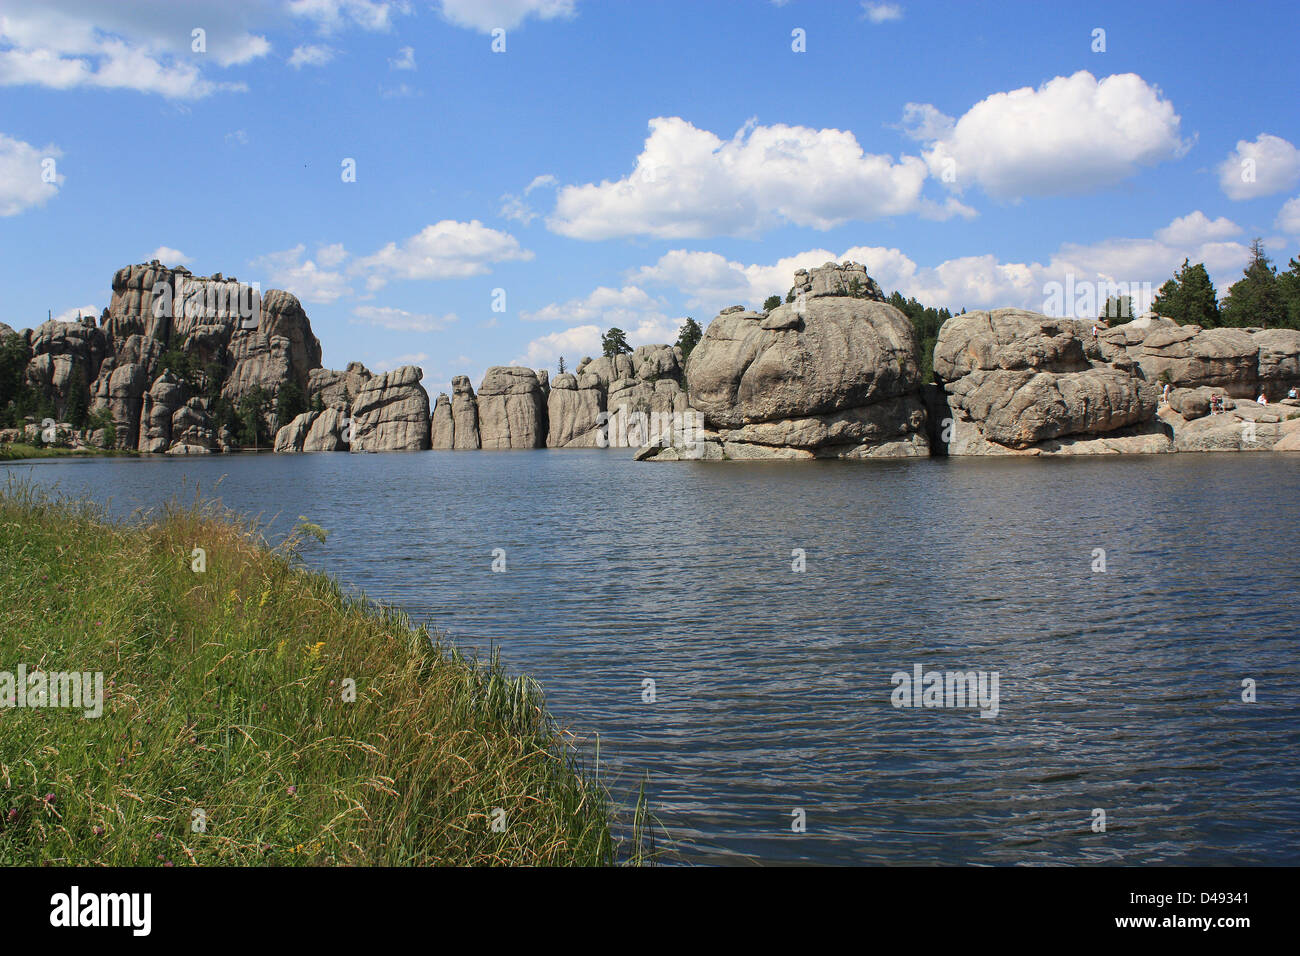 Sylvan Lake, known as the 'crown jewel' of Custer State Park, is located in the Black Hills of South Dakota - Stock Image